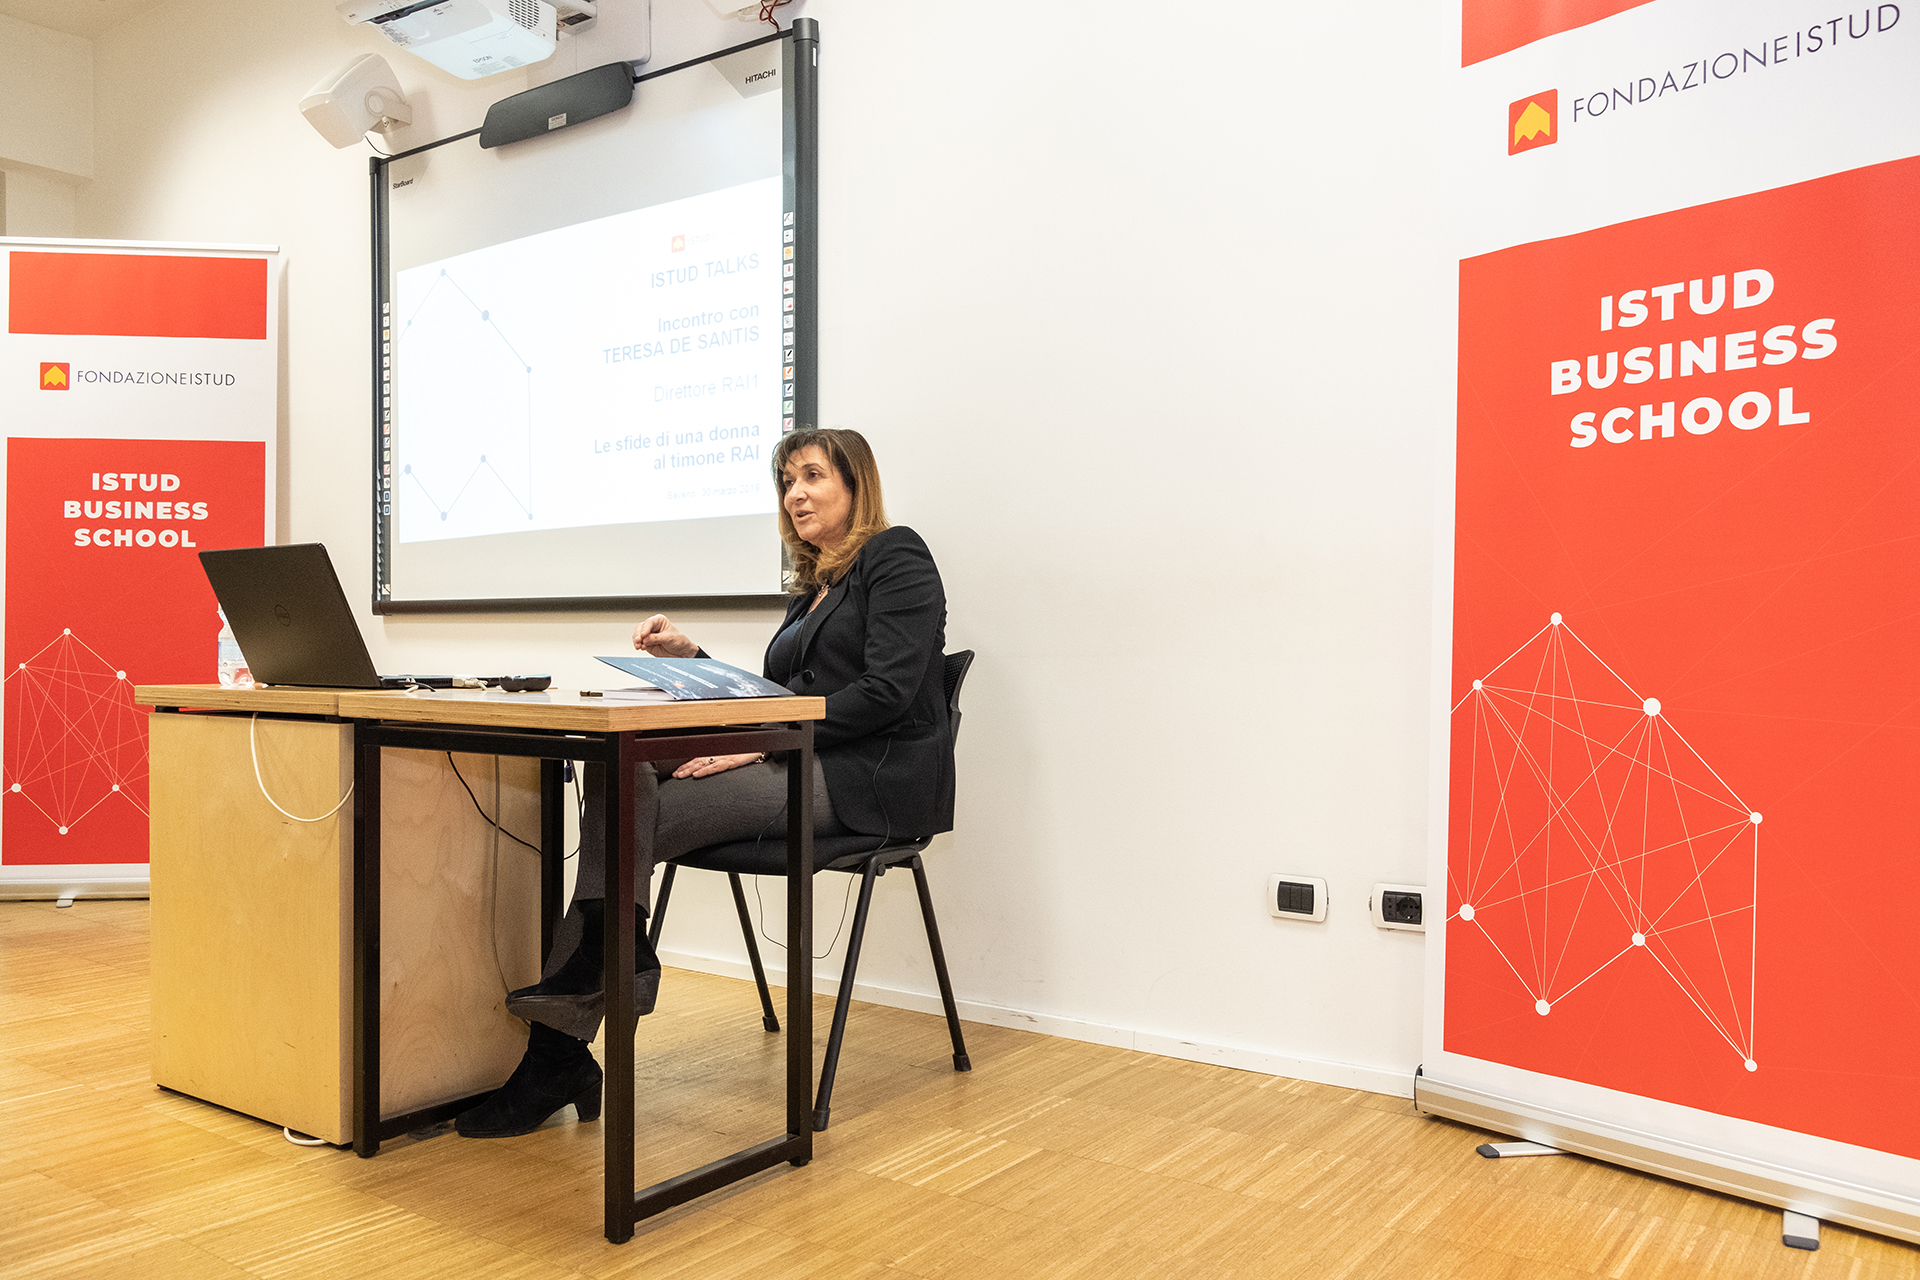 Teresa De Santis Direttore Rai in istud business school